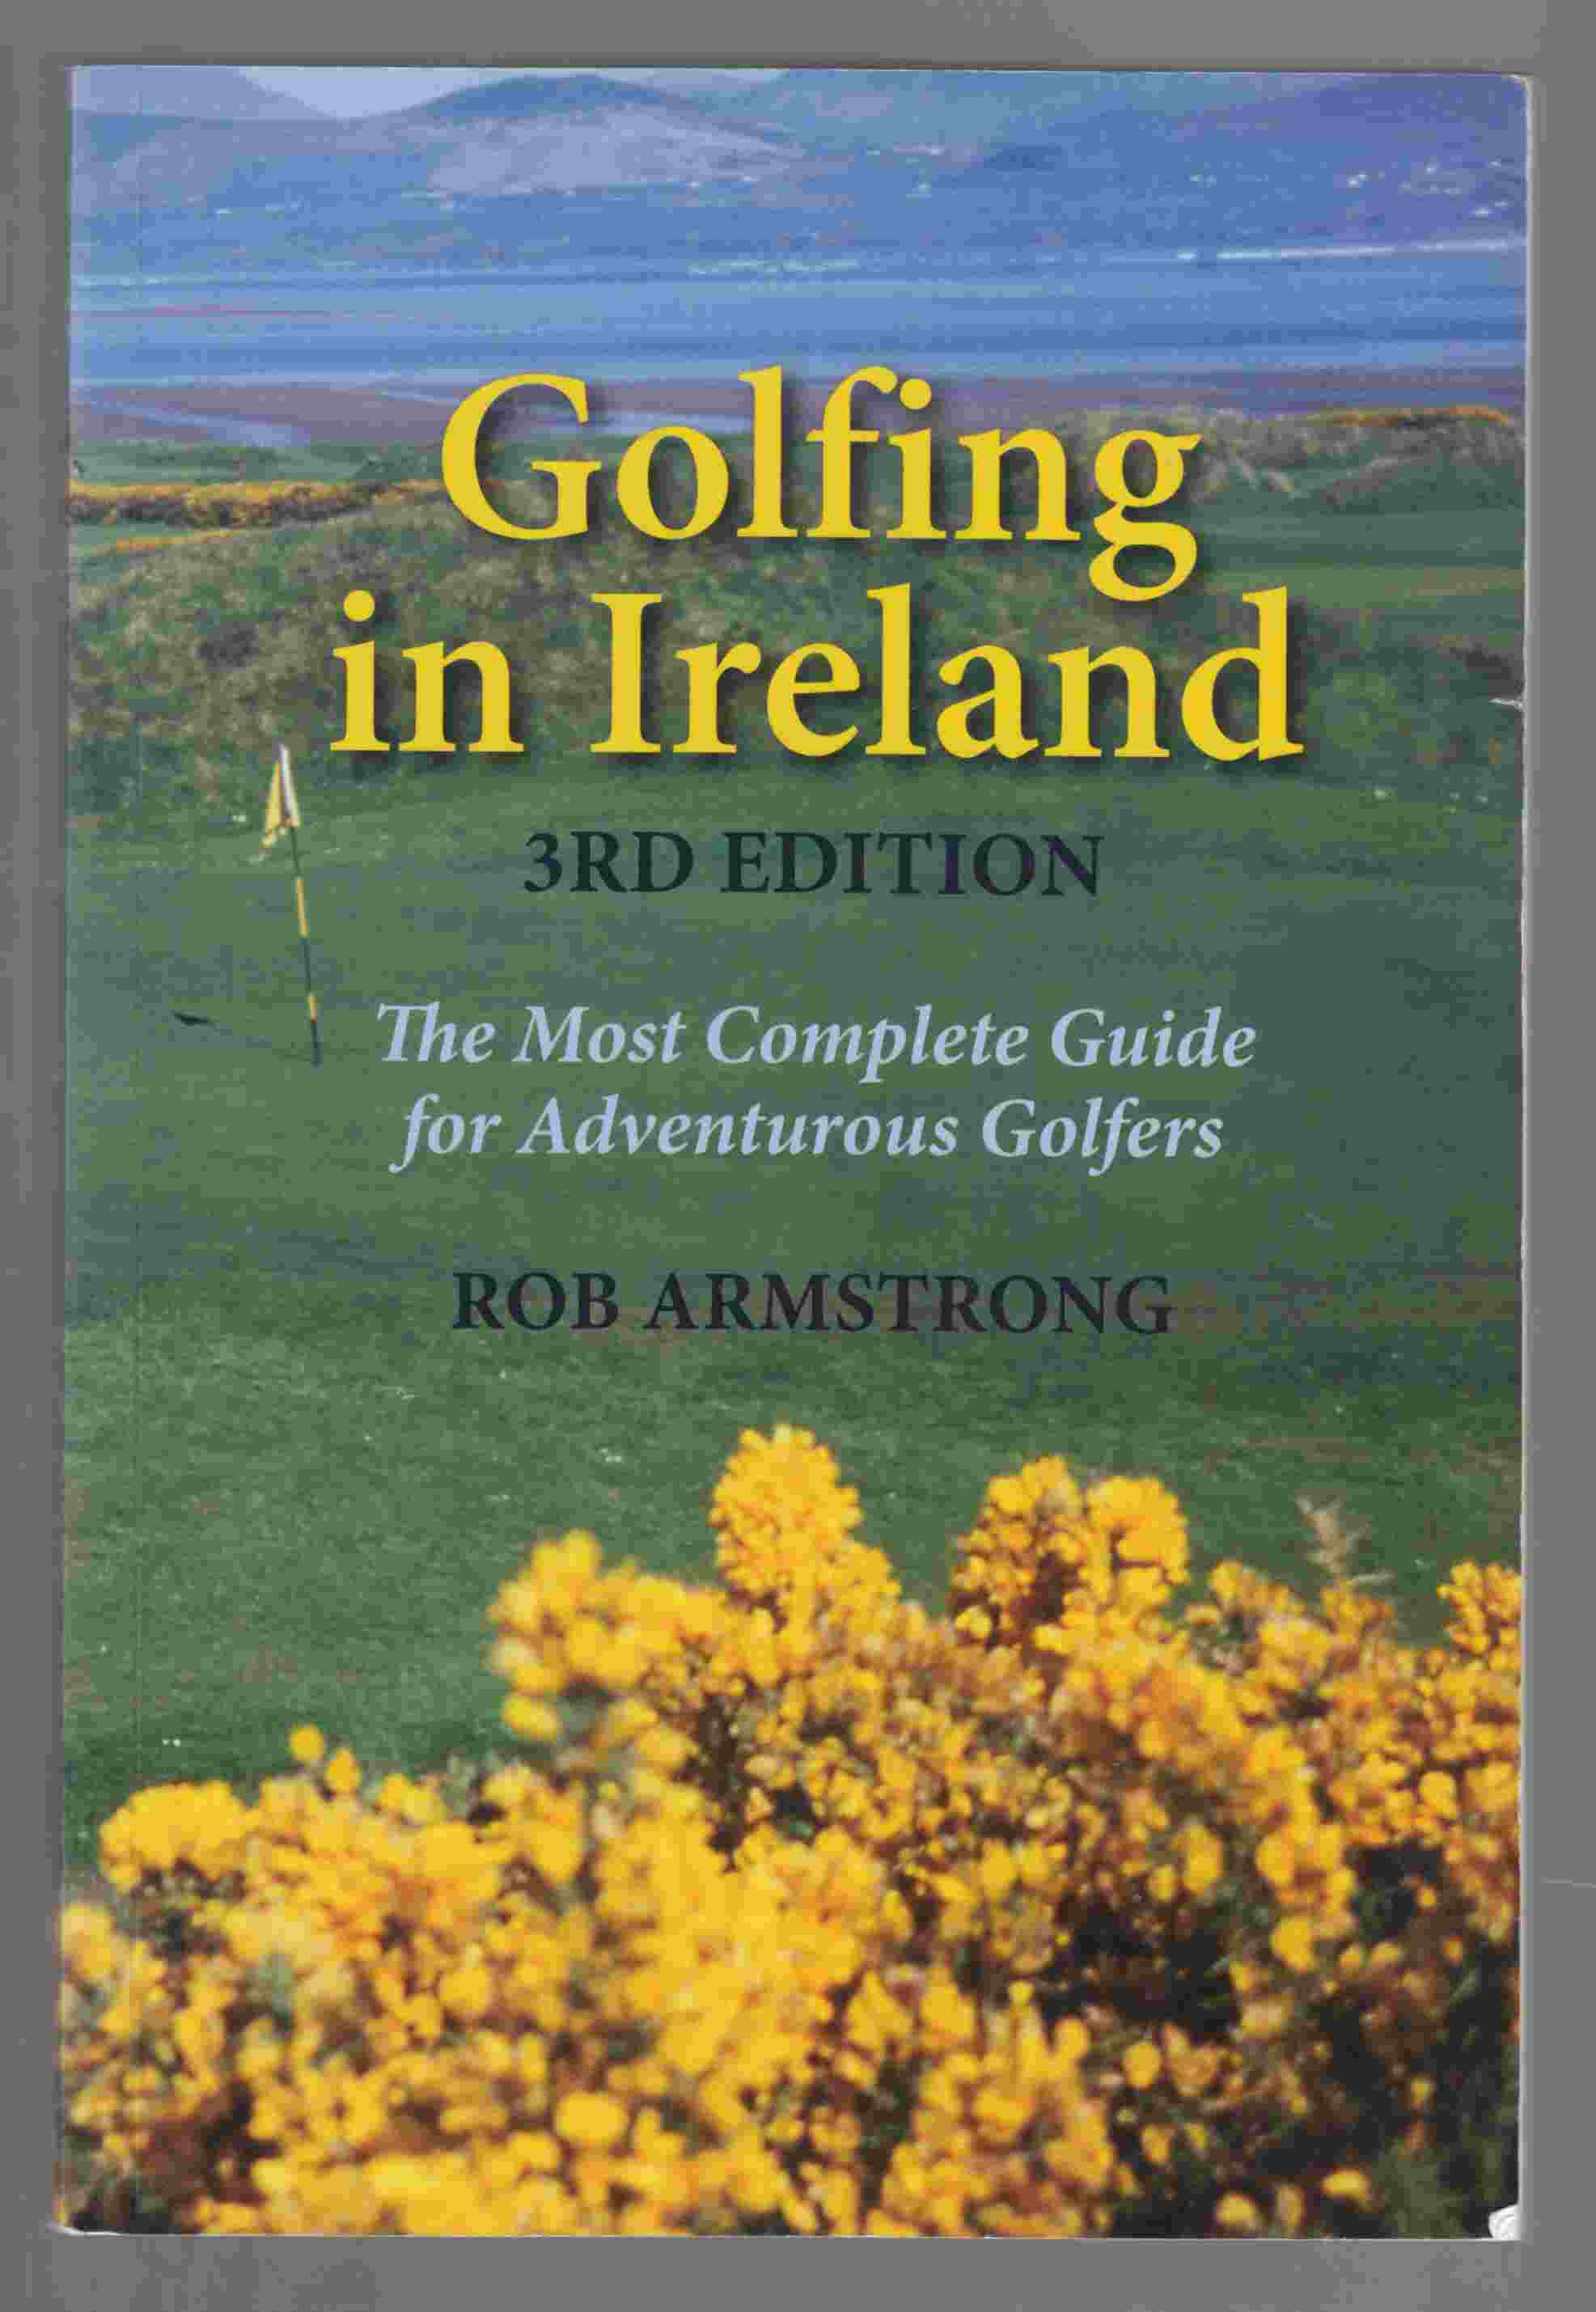 Image for Golfing in Ireland 3rd Edition